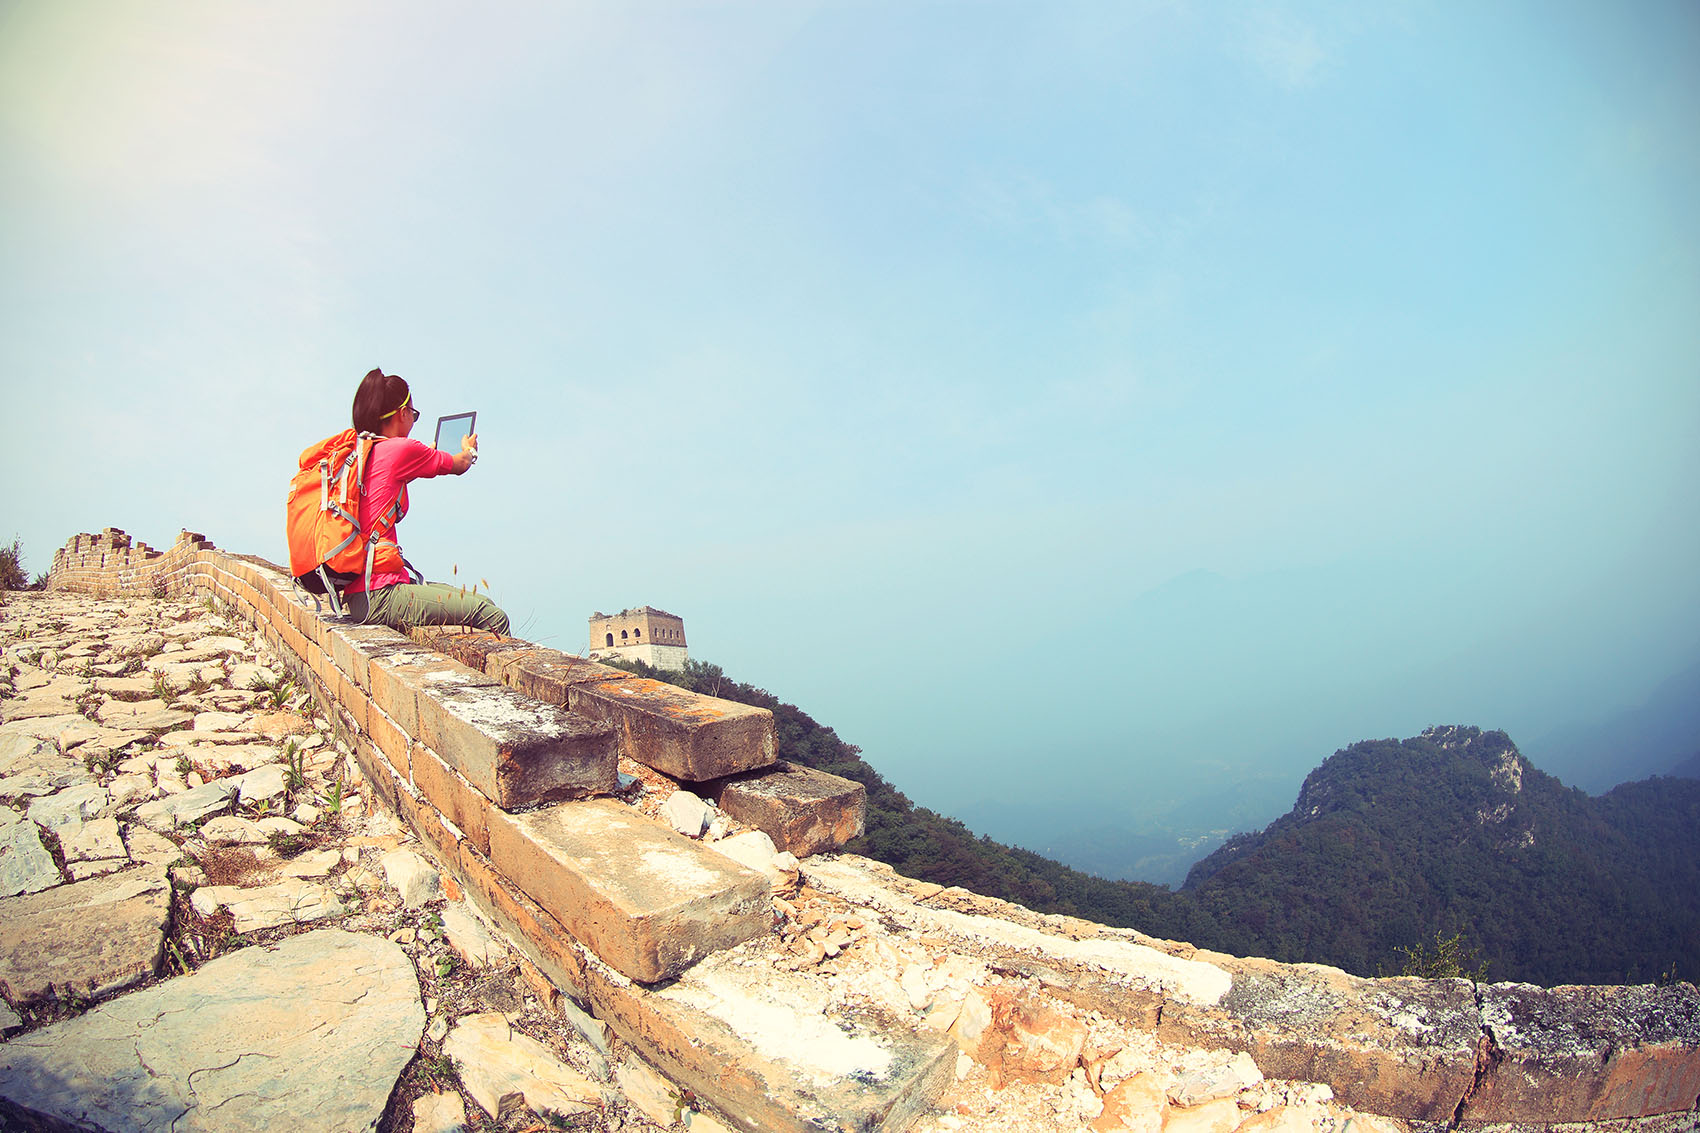 selfie-at-the-great-wall-of-china